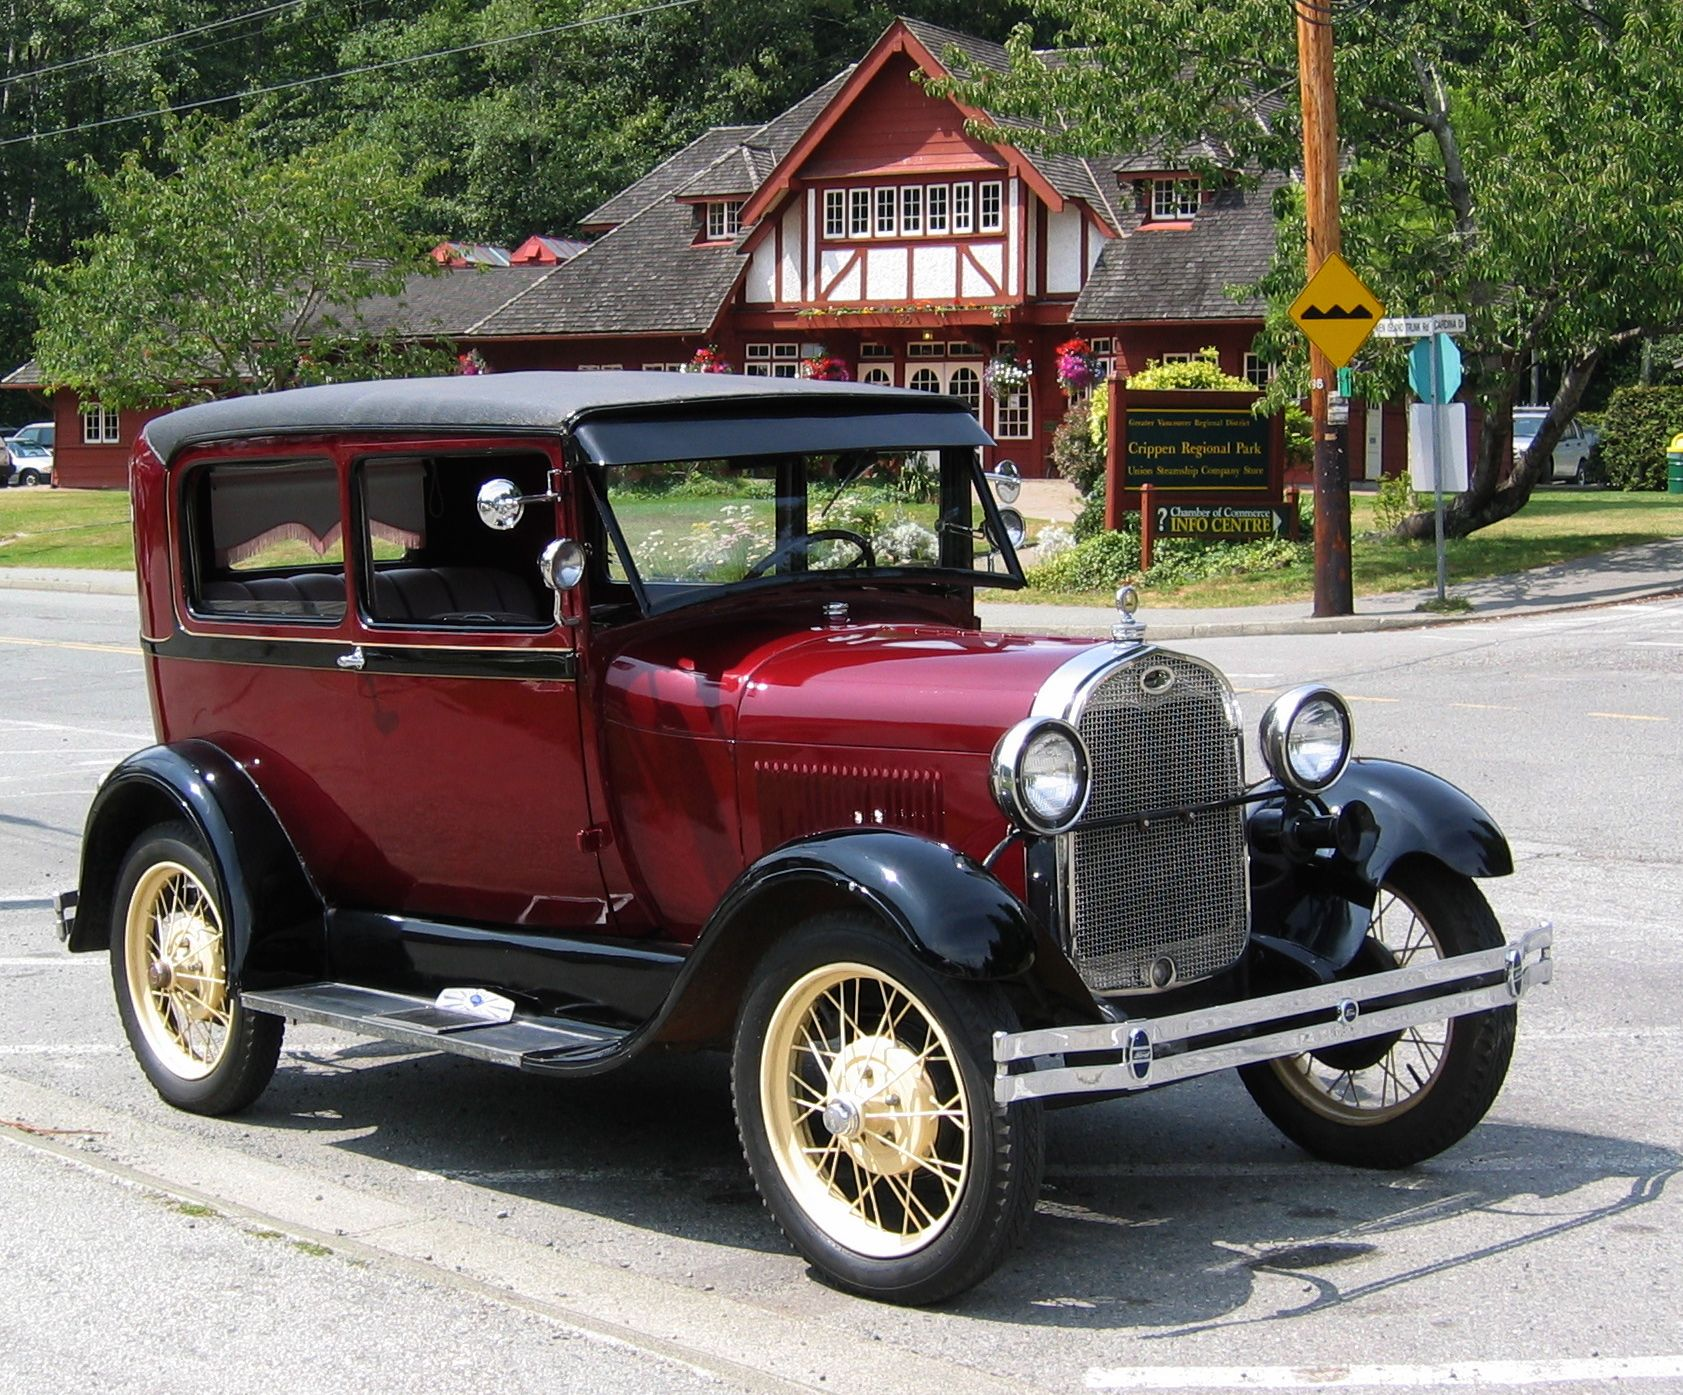 model A | Working on Ford 1929 model A Coupe (45-A) and testdrive ...